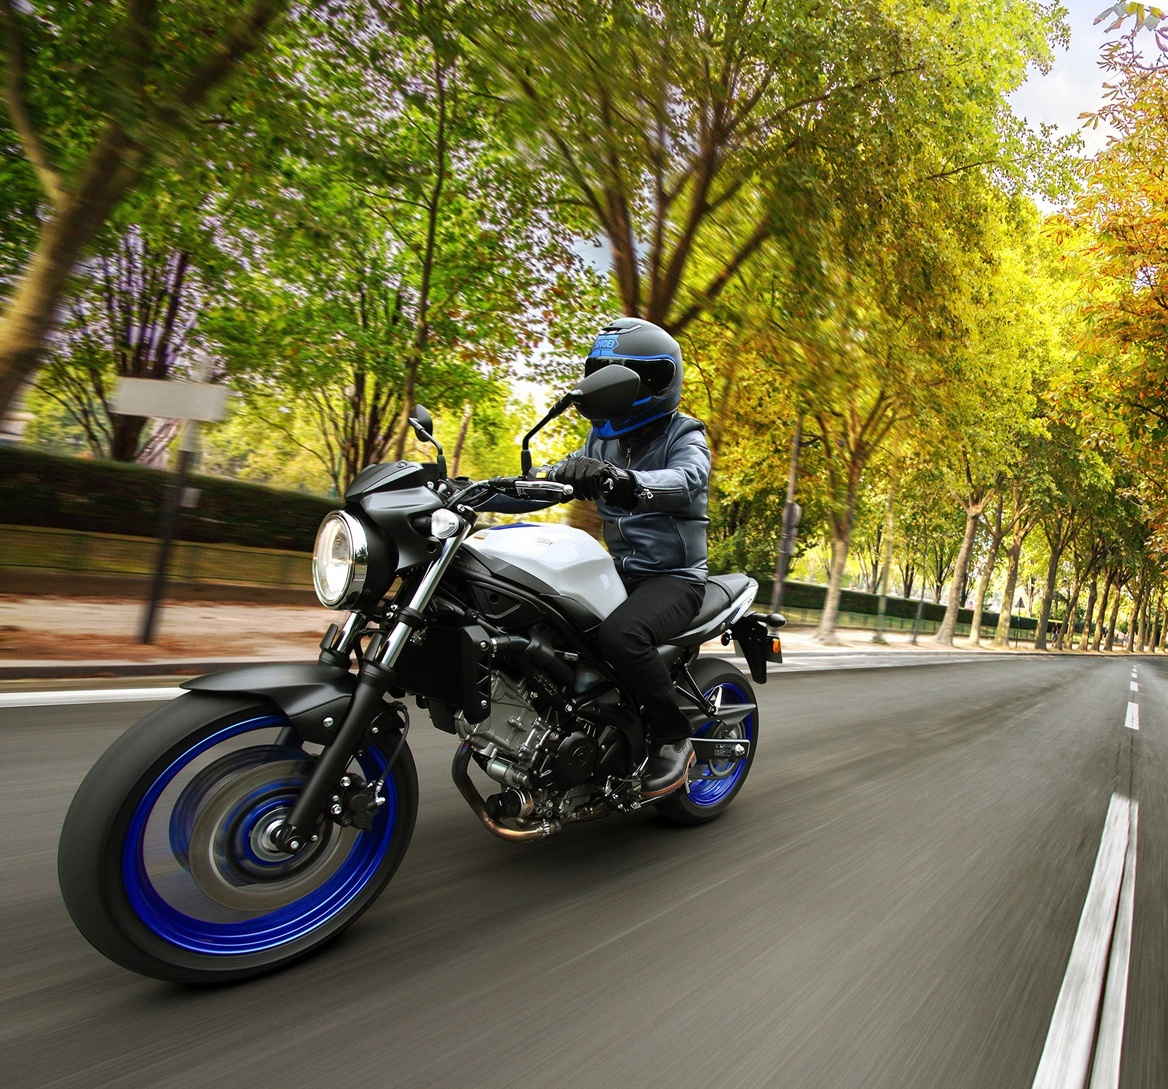 2017 Suzuki SV650 ABS in New Castle, Pennsylvania